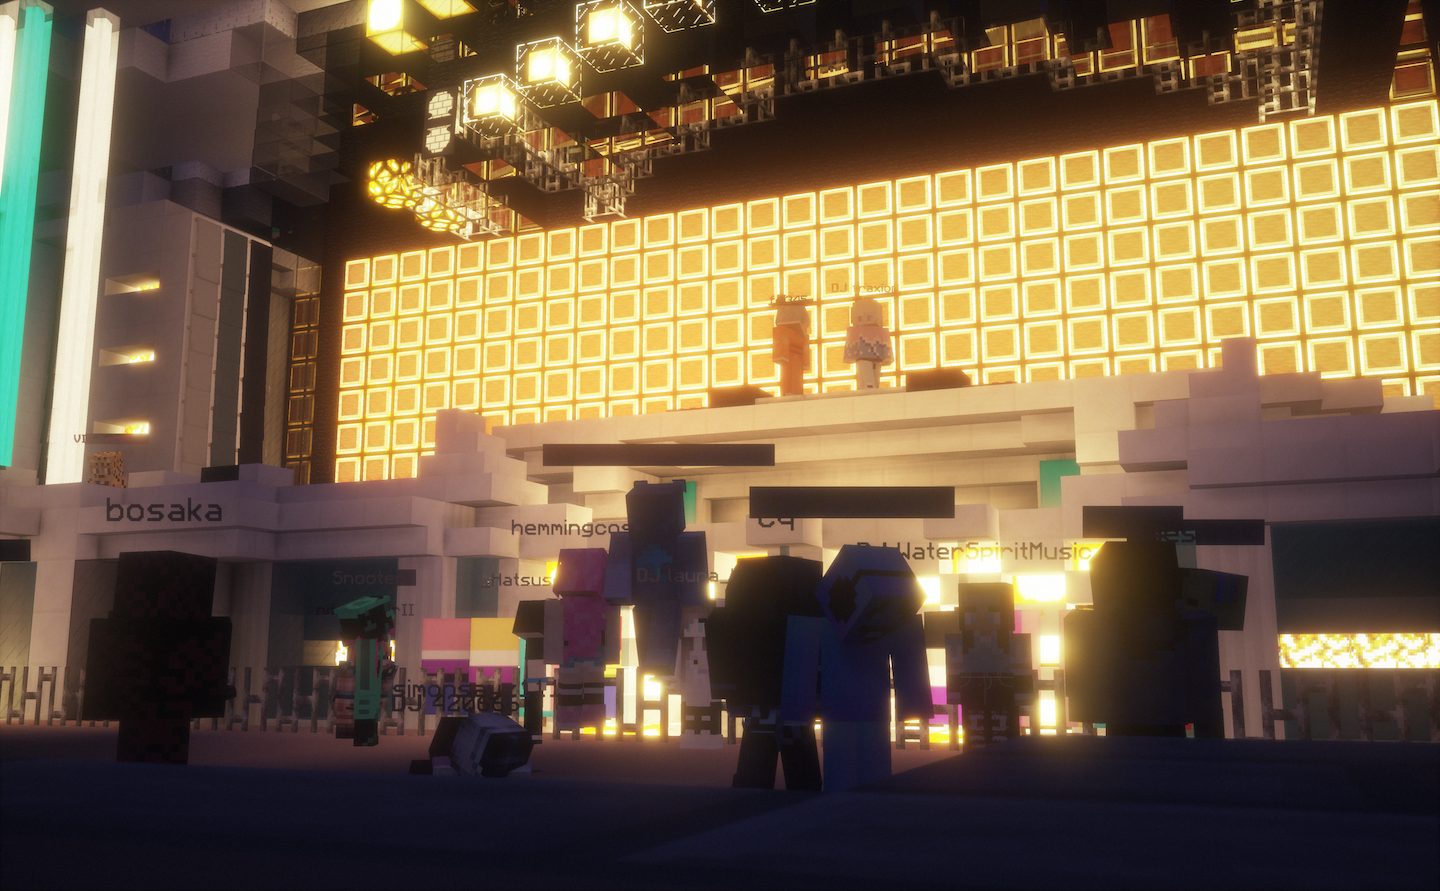 The Best New Music Festival Is in 'Minecraft' | e-Radio USa